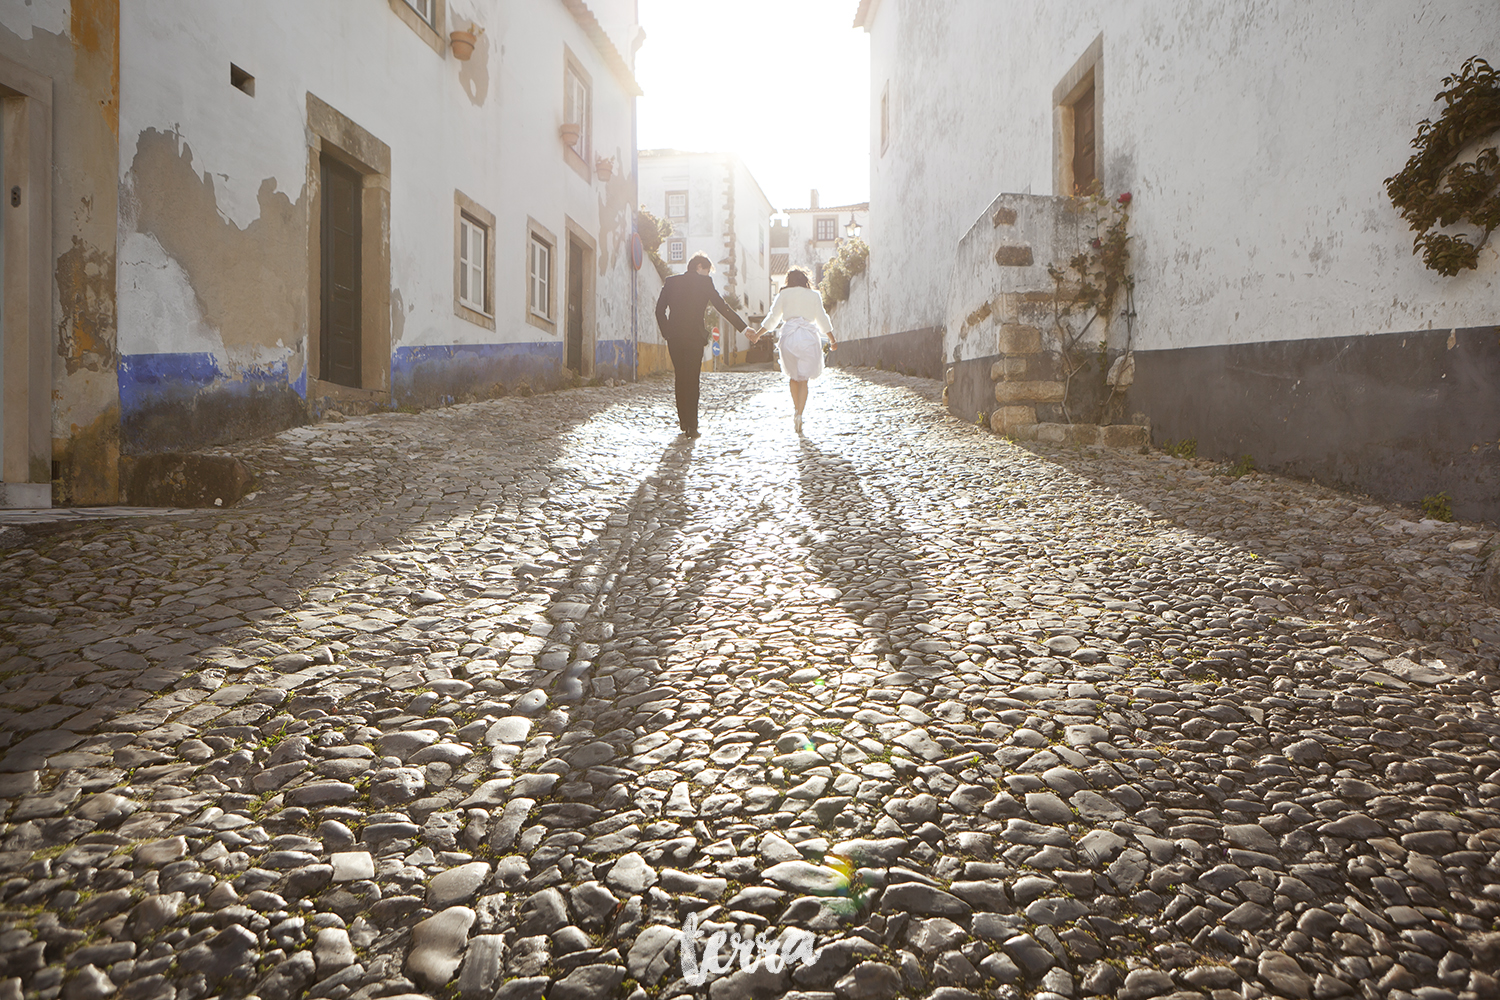 sessao-fotografica-trash-the-dress-viva-hotel-obidos-terra-fotografia-0038.jpg